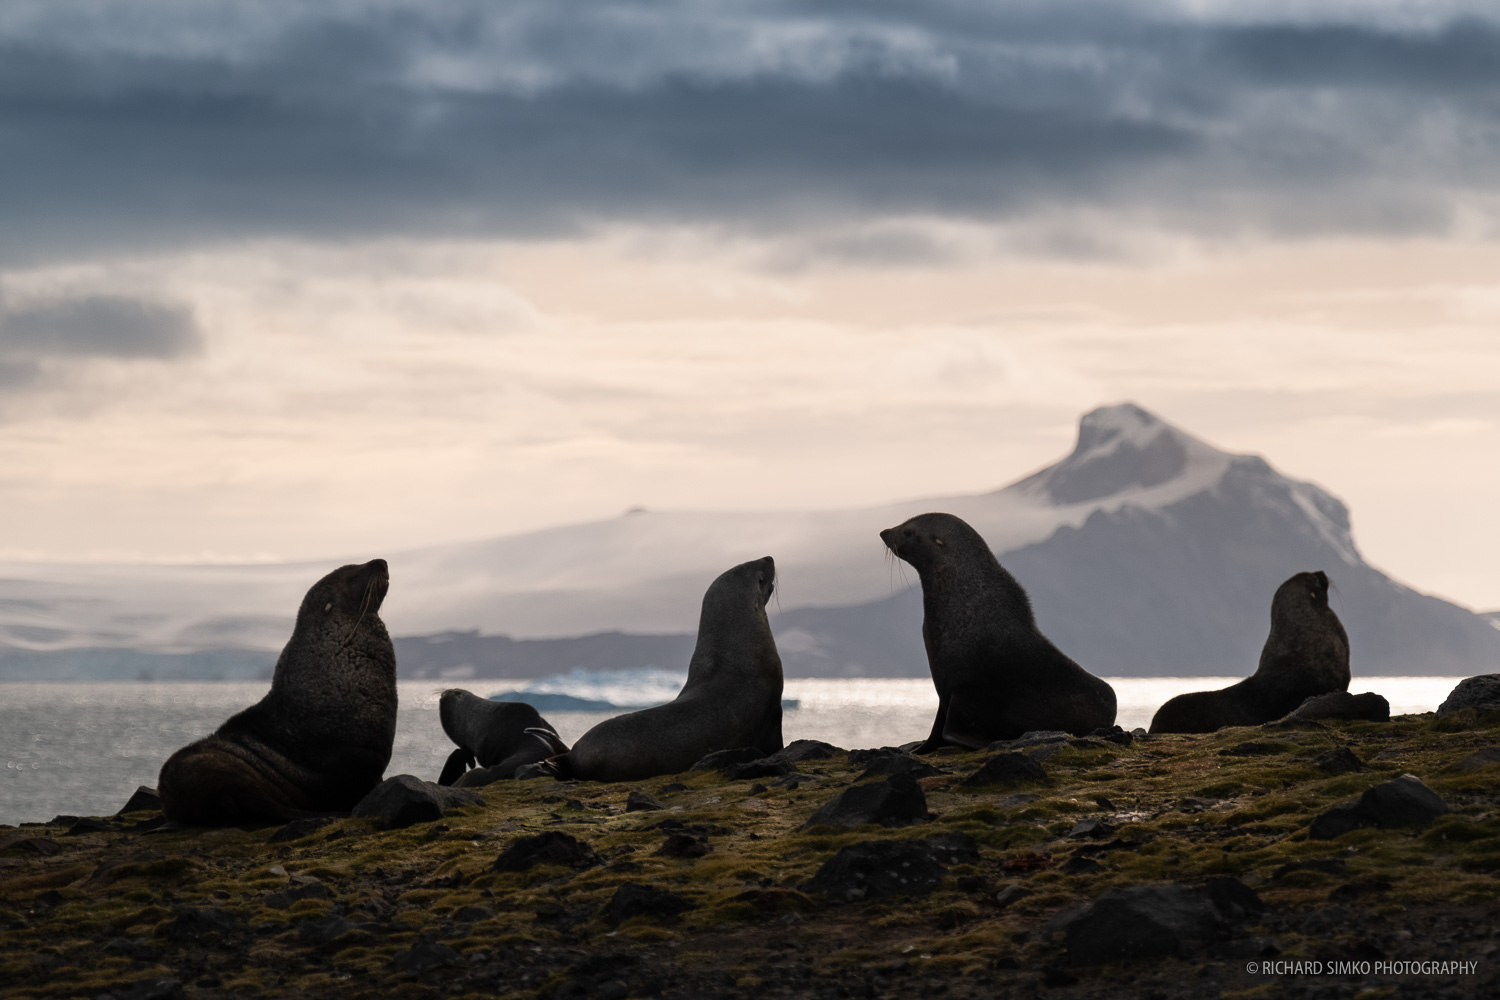 A scene from Penguin Island. Antarctic fur seals create a nice silhouette against dropping sun, nicely backlit with warm colours.